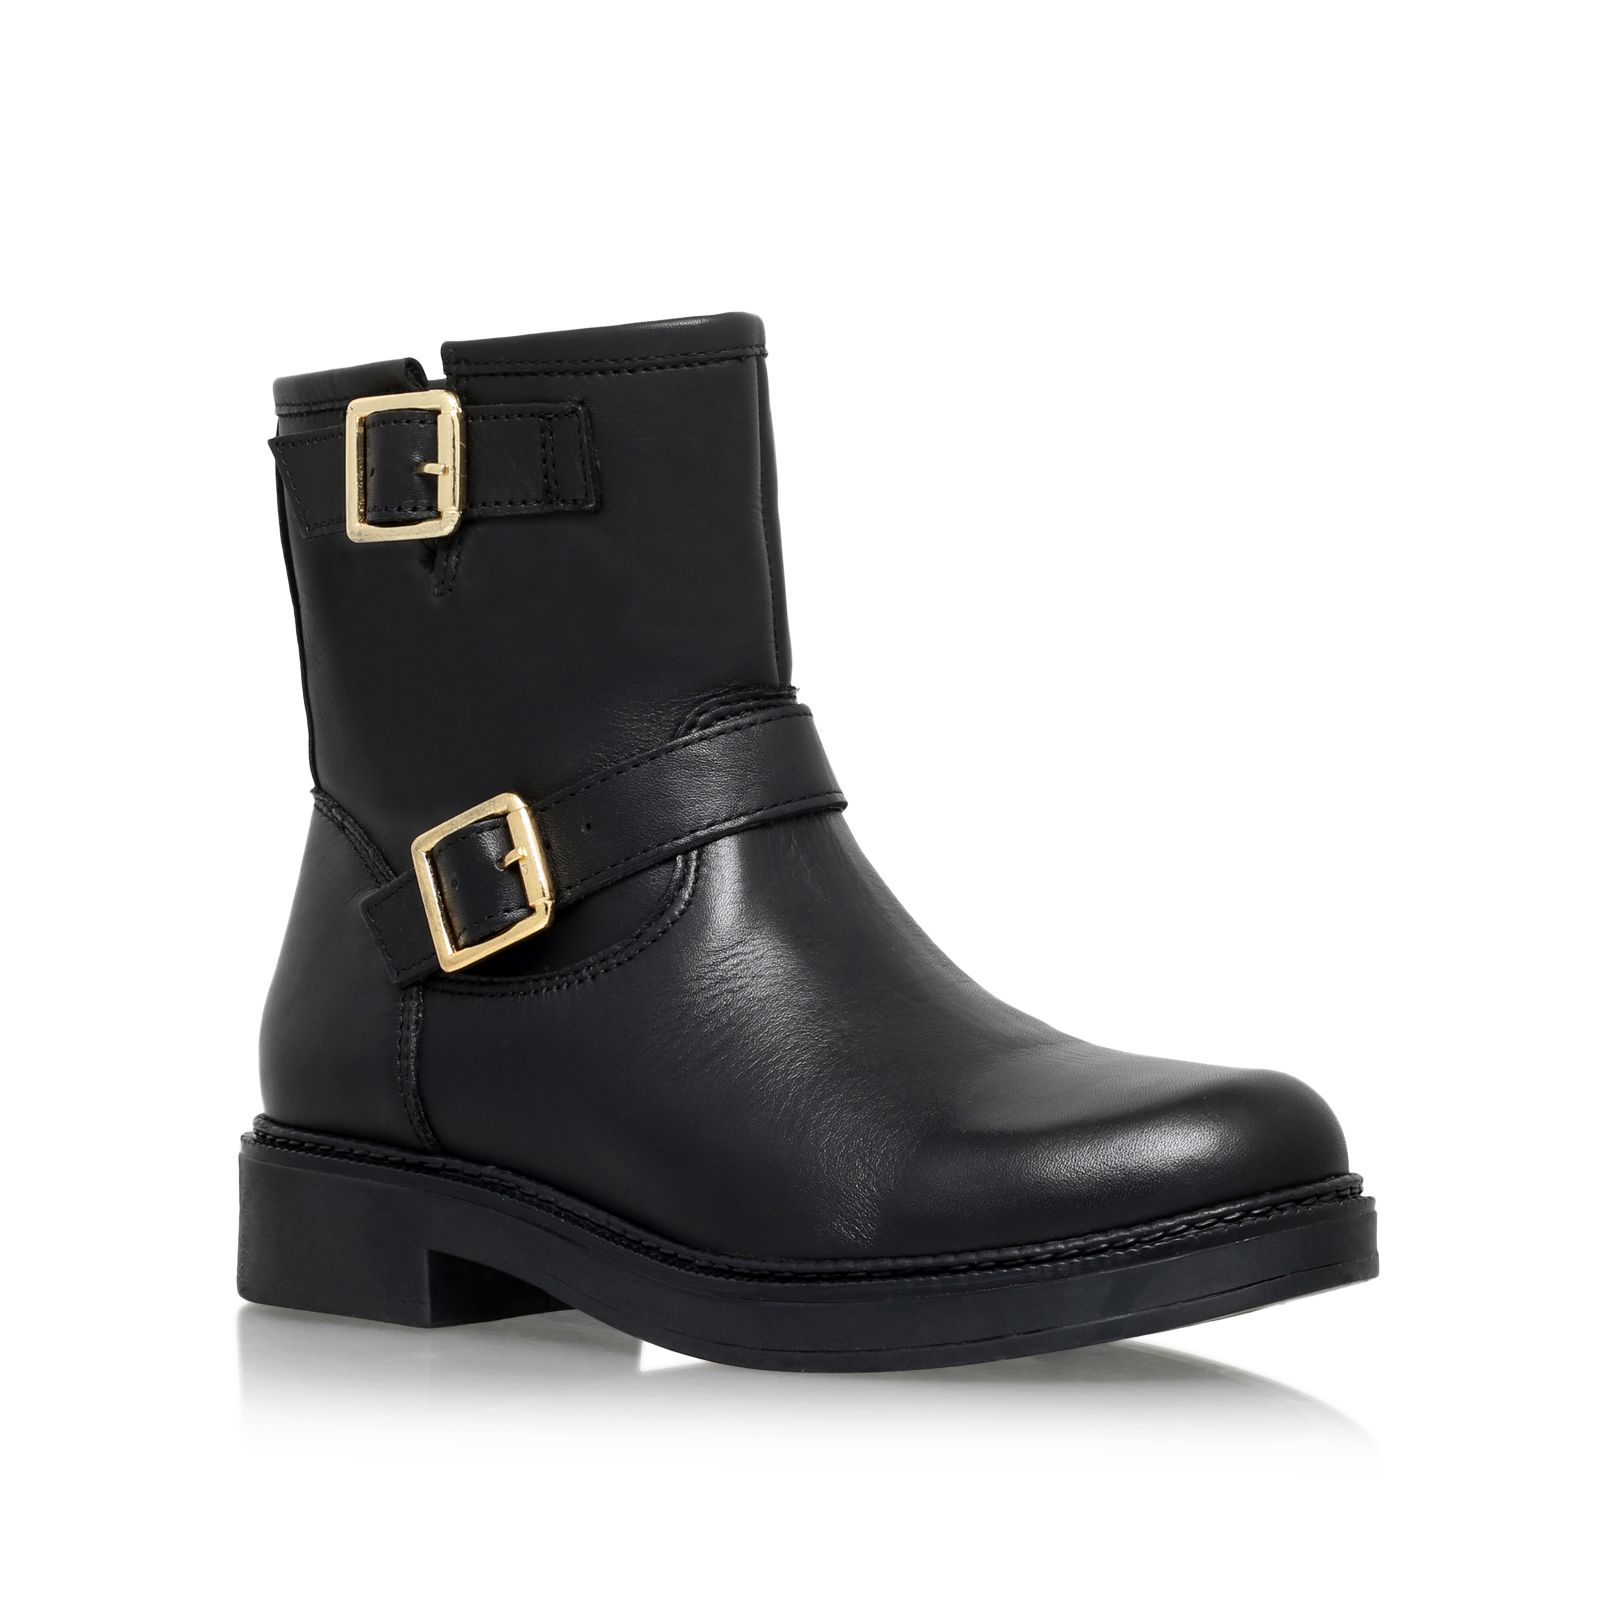 Carvela Kurt Geiger Shed Low Heel Biker Boots In Black | Lyst